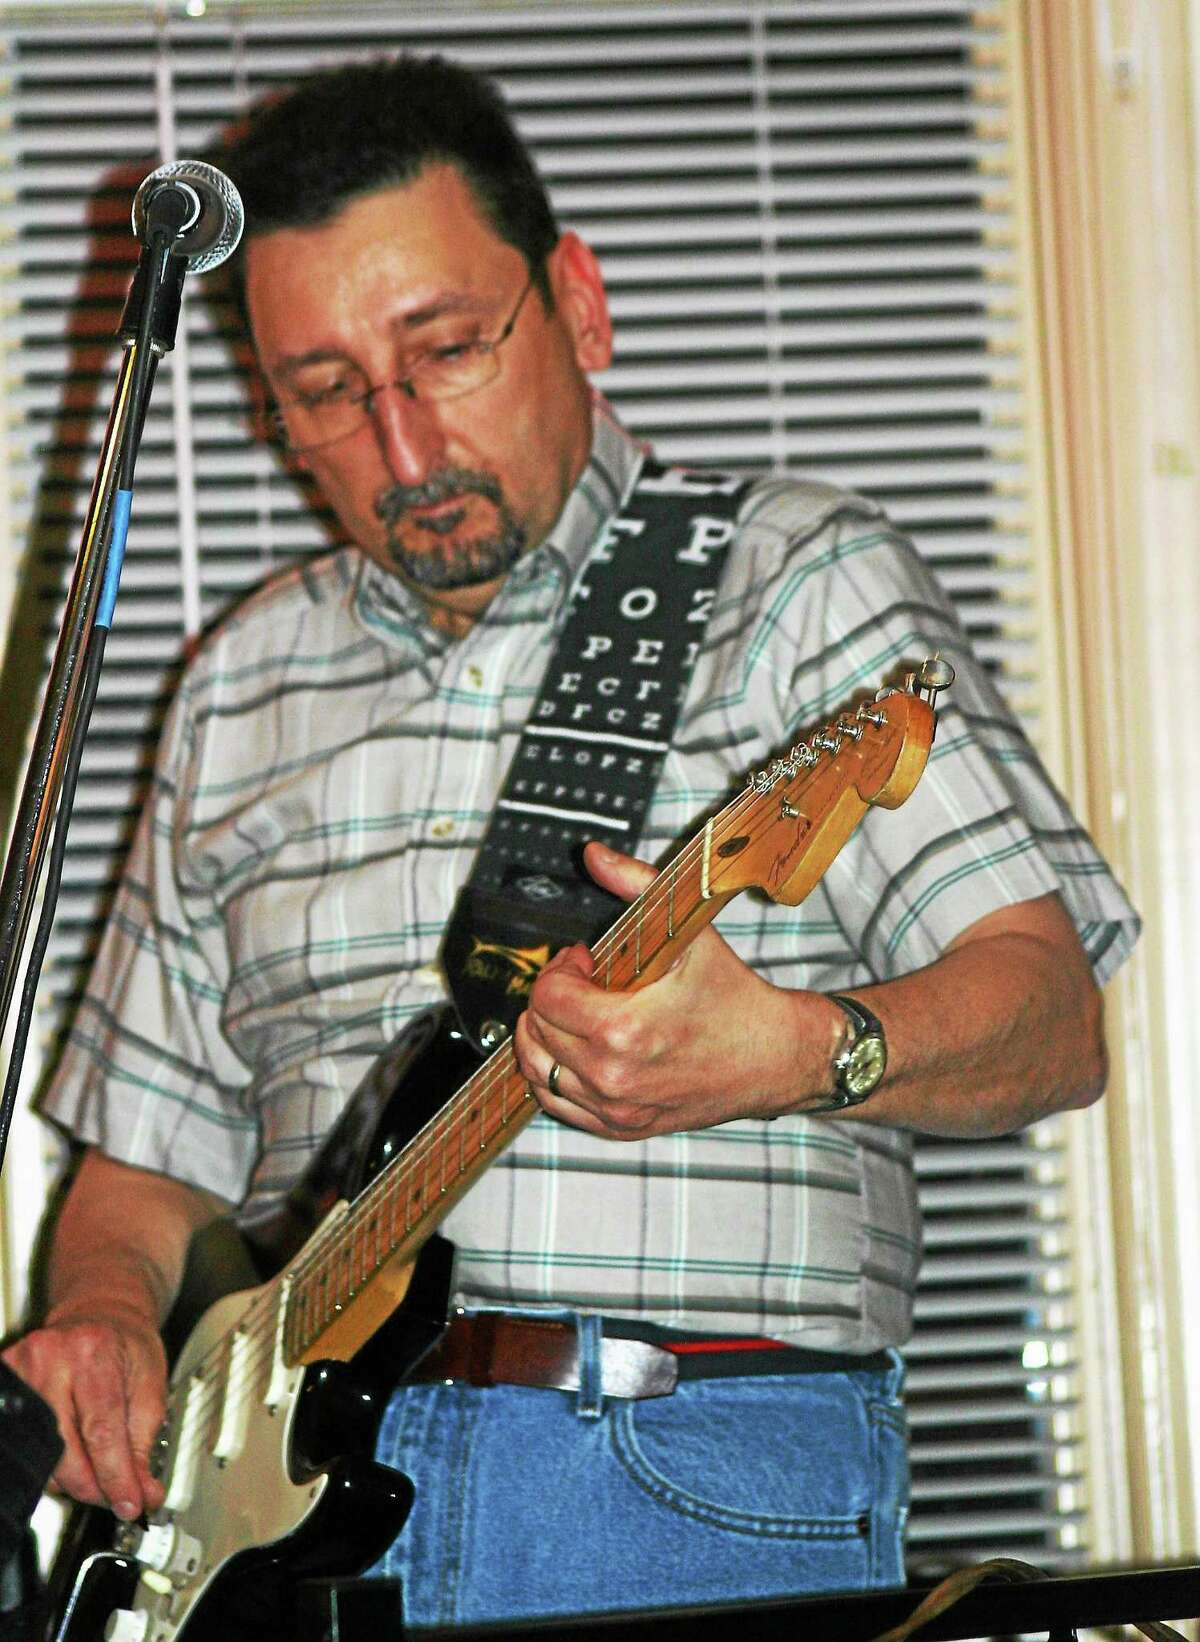 Photo by Domenic Forcella The Steve Polezonis Trio plays from 2-4 p.m. at Oktoberfest at Spaten Beerhall Saturday in New Britain.